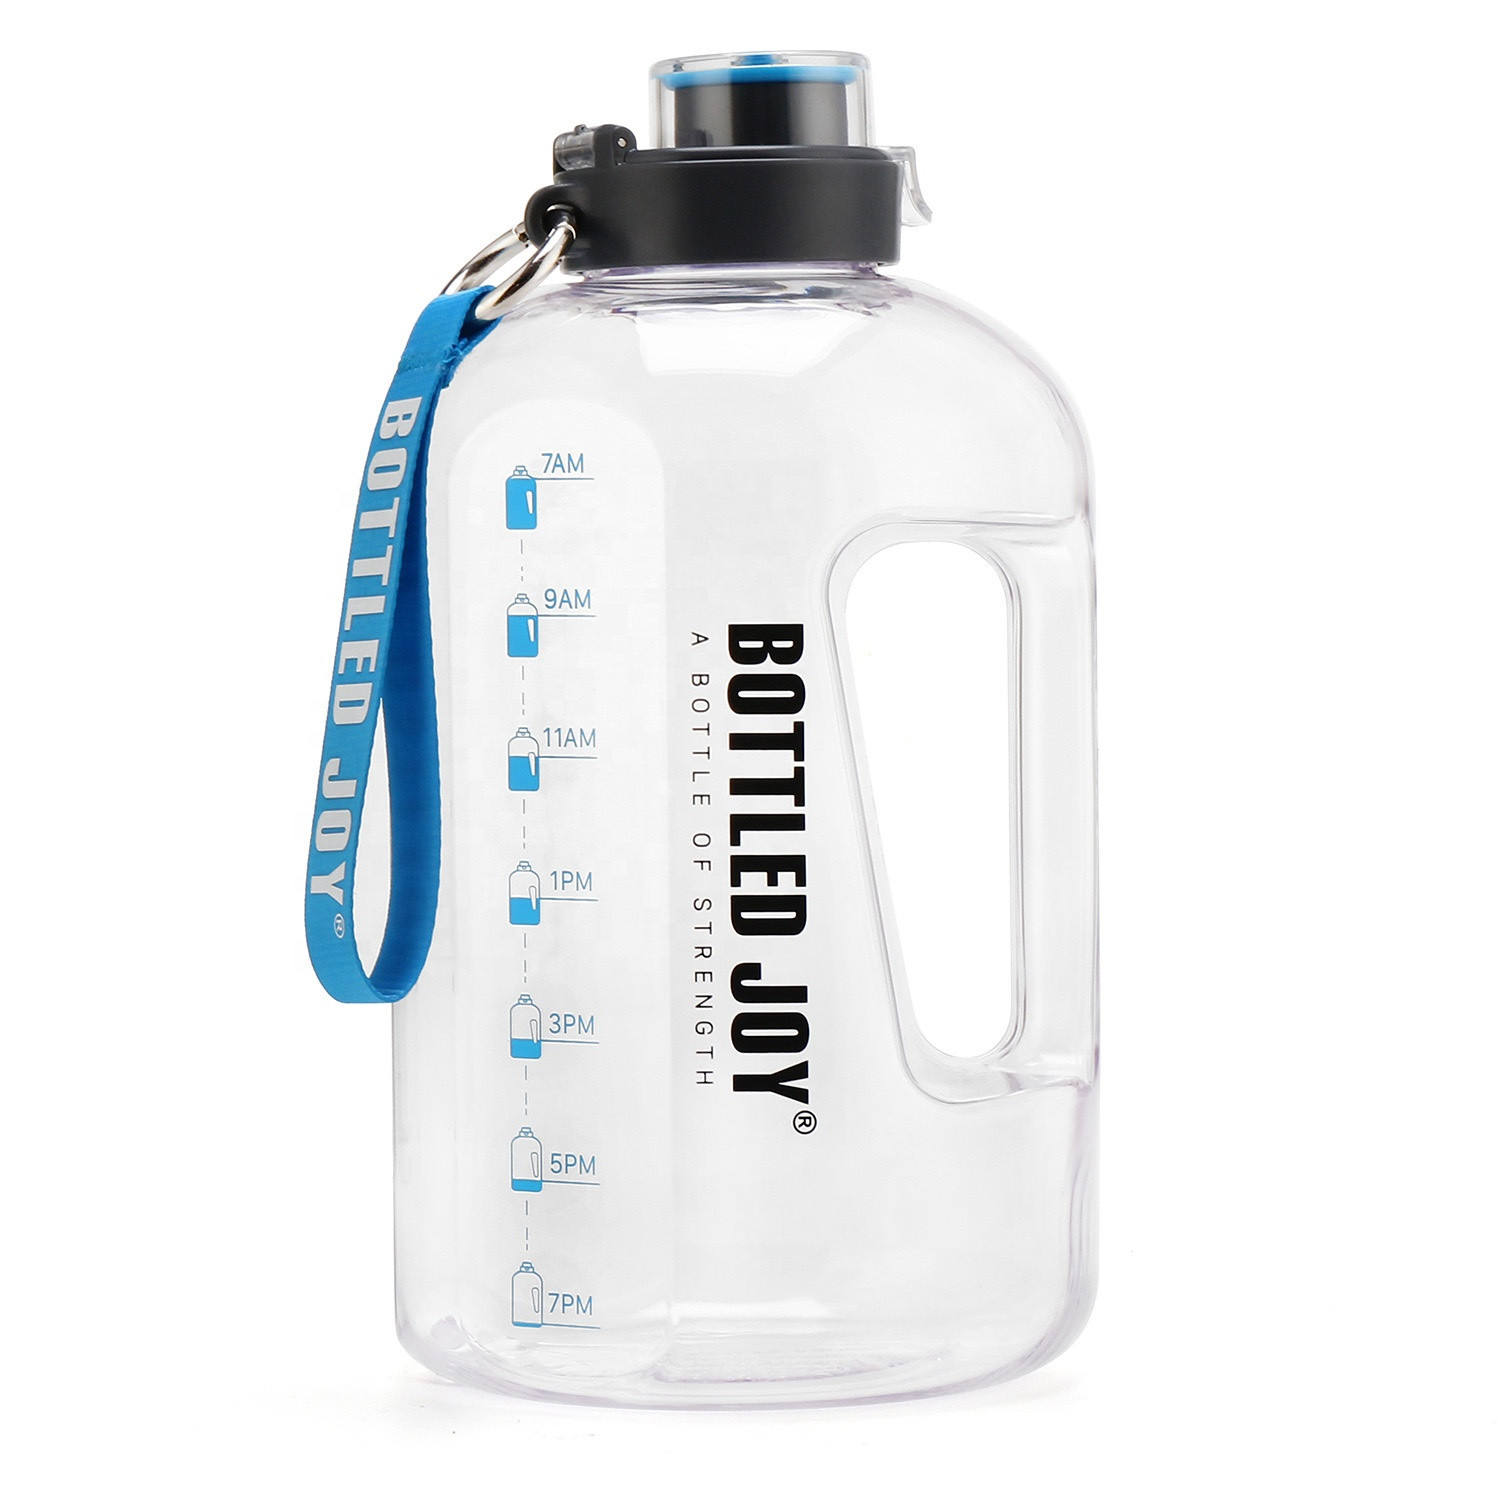 BPA Free 1 Gallon Large Size Water Bottle Hydration With With Motivational Time Marker Reminder For Camping Workouts And Outdoor